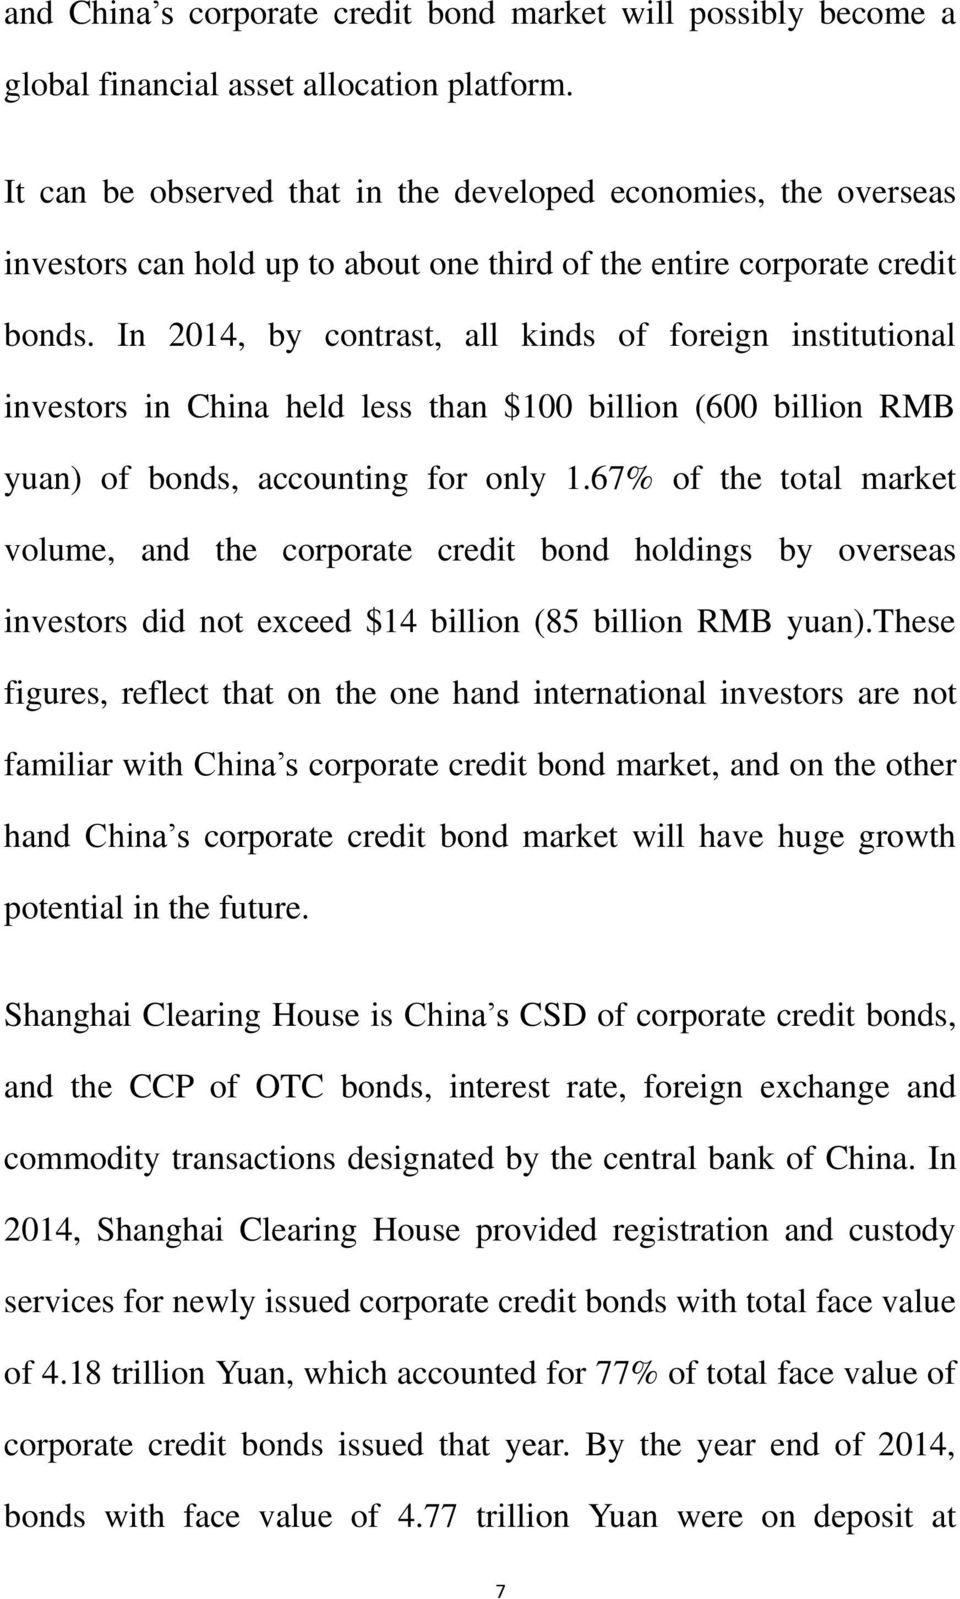 In 2014, by contrast, all kinds of foreign institutional investors in China held less than $100 billion (600 billion RMB yuan) of bonds, accounting for only 1.